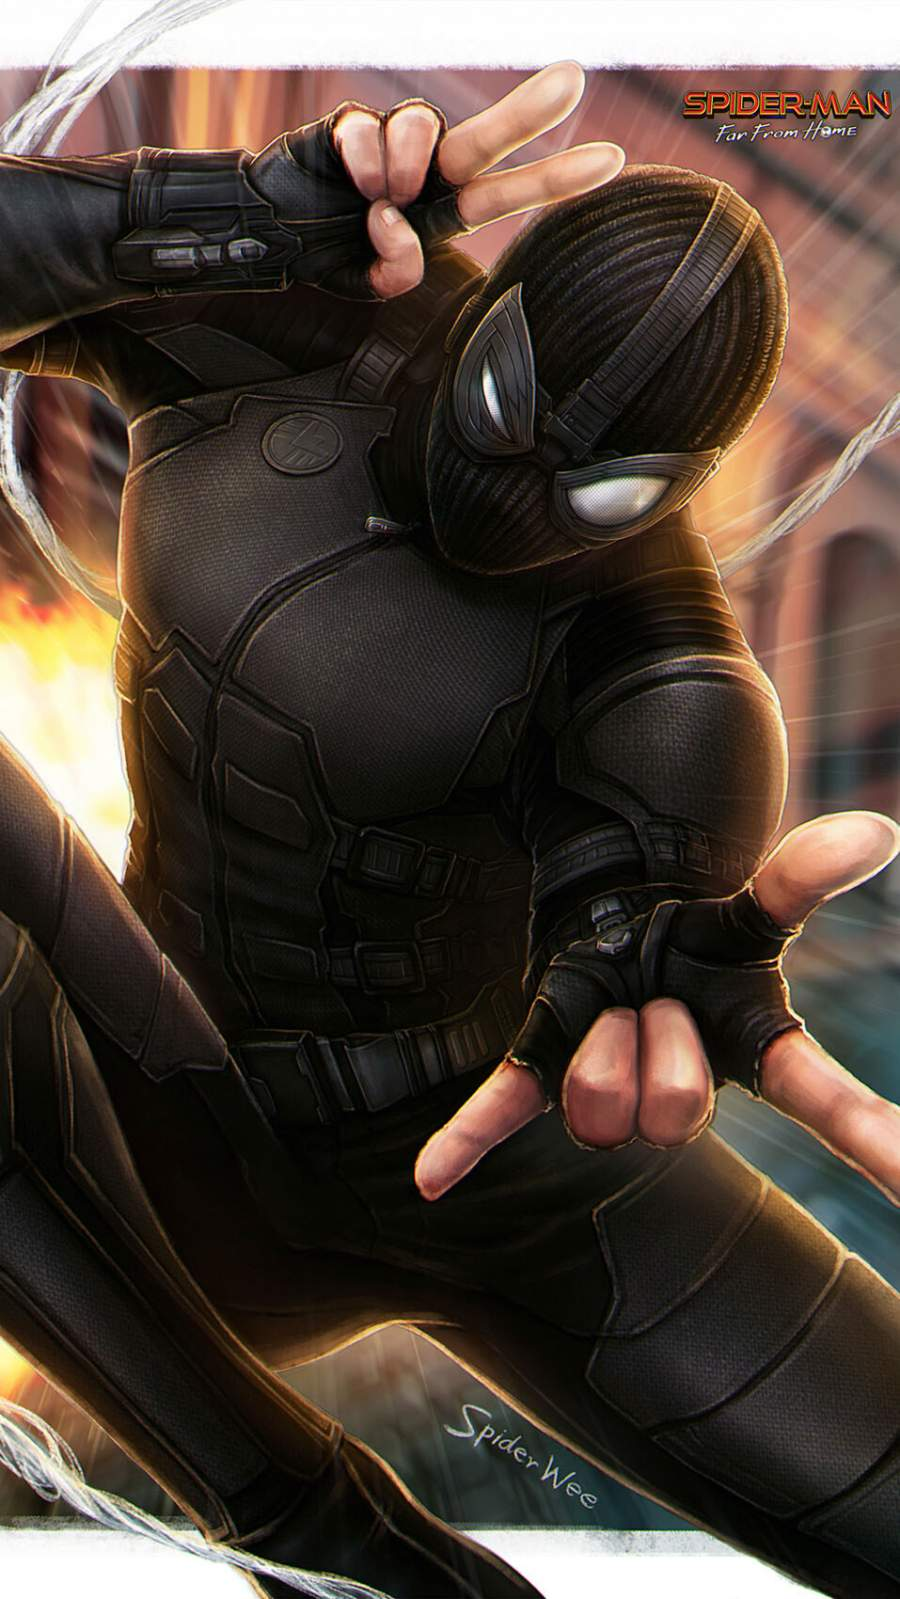 Stealth Spiderman Suit iPhone Wallpaper